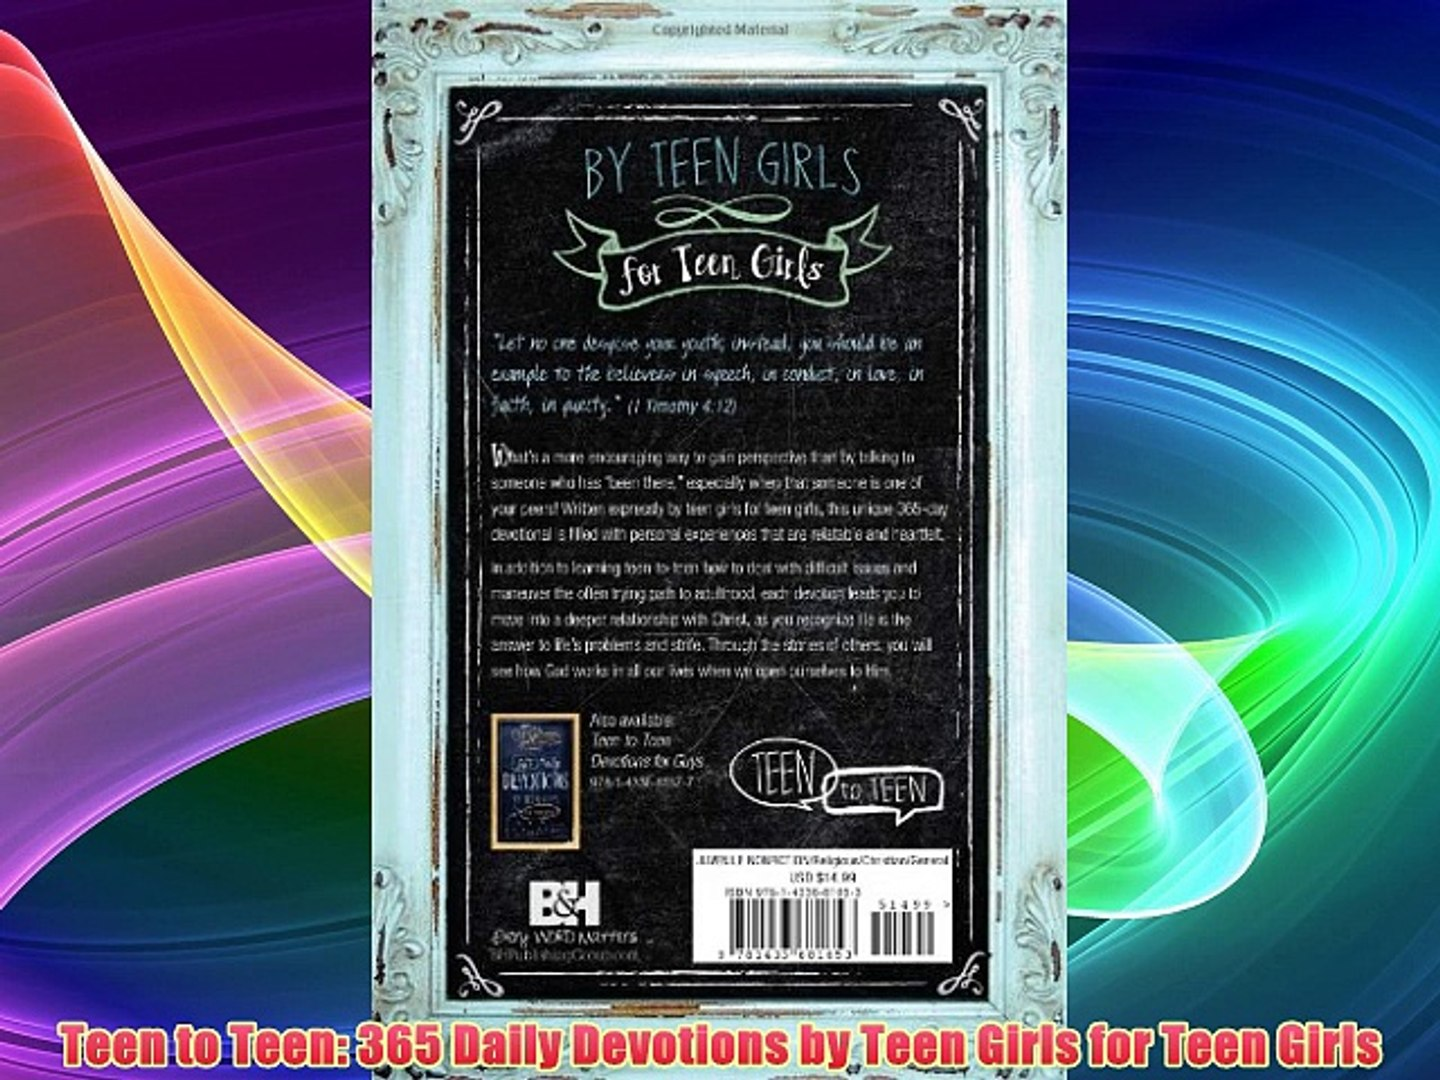 Teen to Teen: 365 Daily Devotions by Teen Girls for Teen Girls FREE DOWNLOAD BOOK